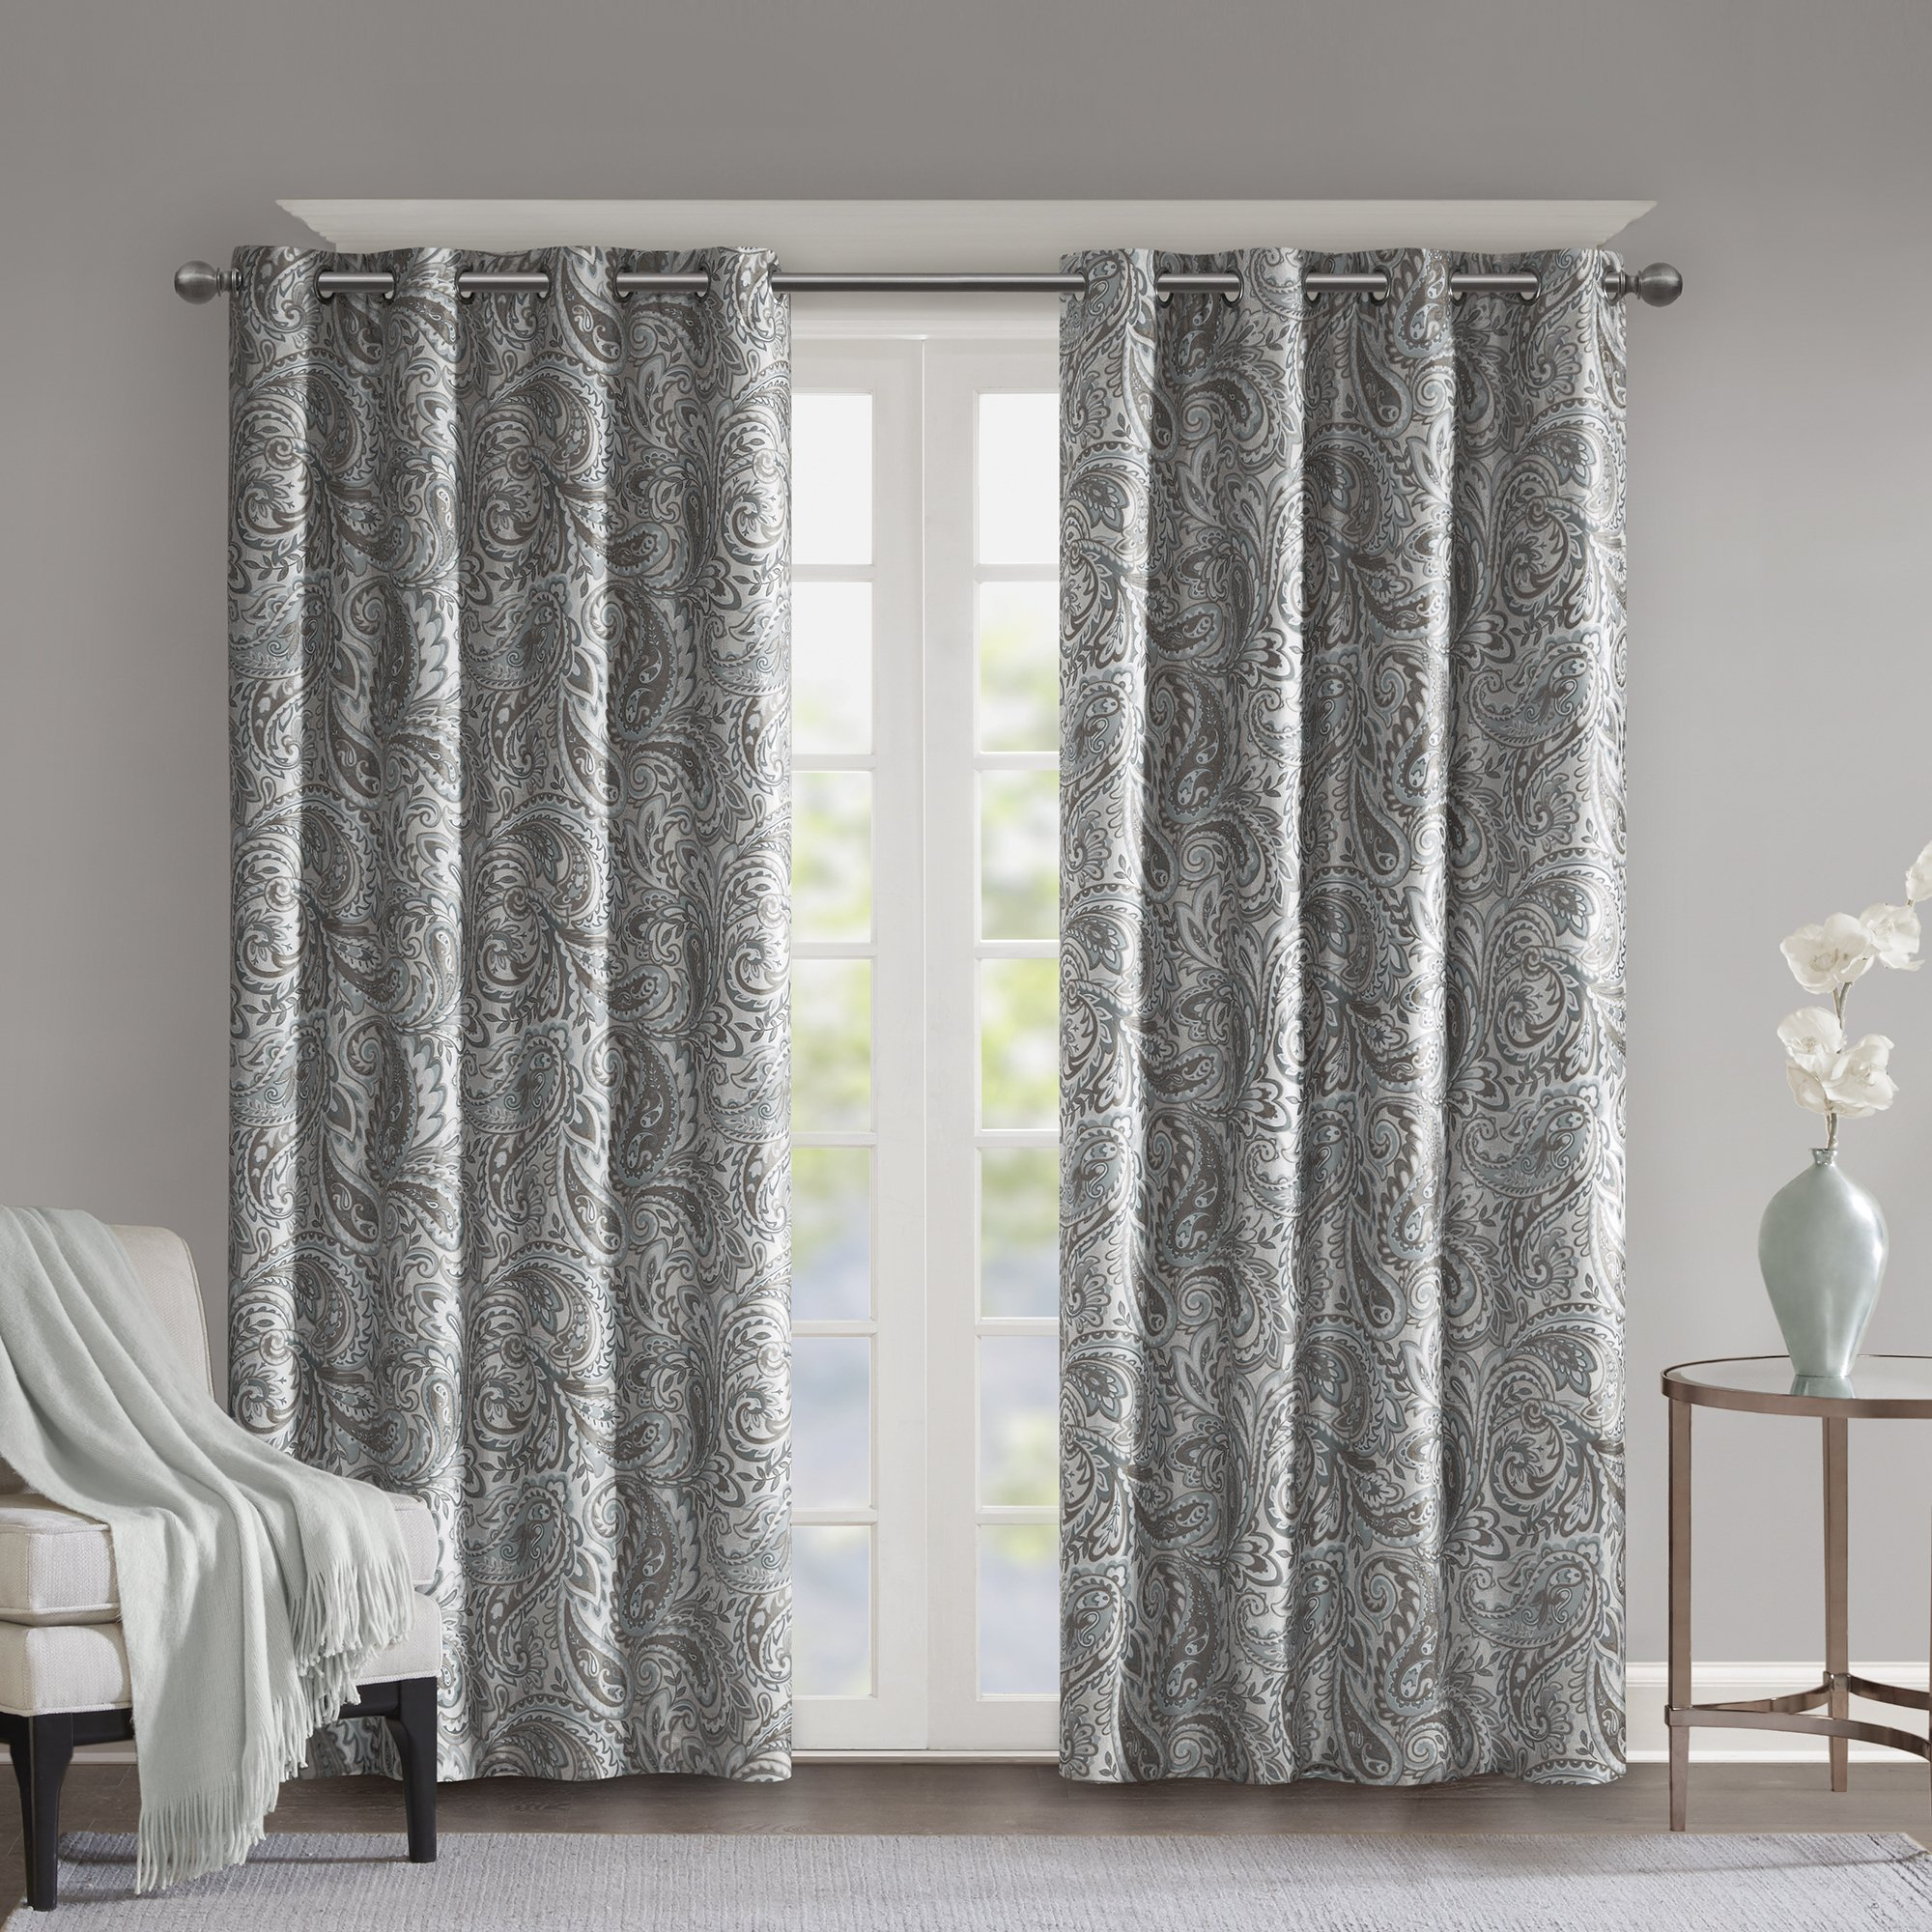 Sunsmart Dahlia Paisley Printed Total Blackout Single Window Curtain Panel 95 L In Ivory As Is Item 50 W X 95 L